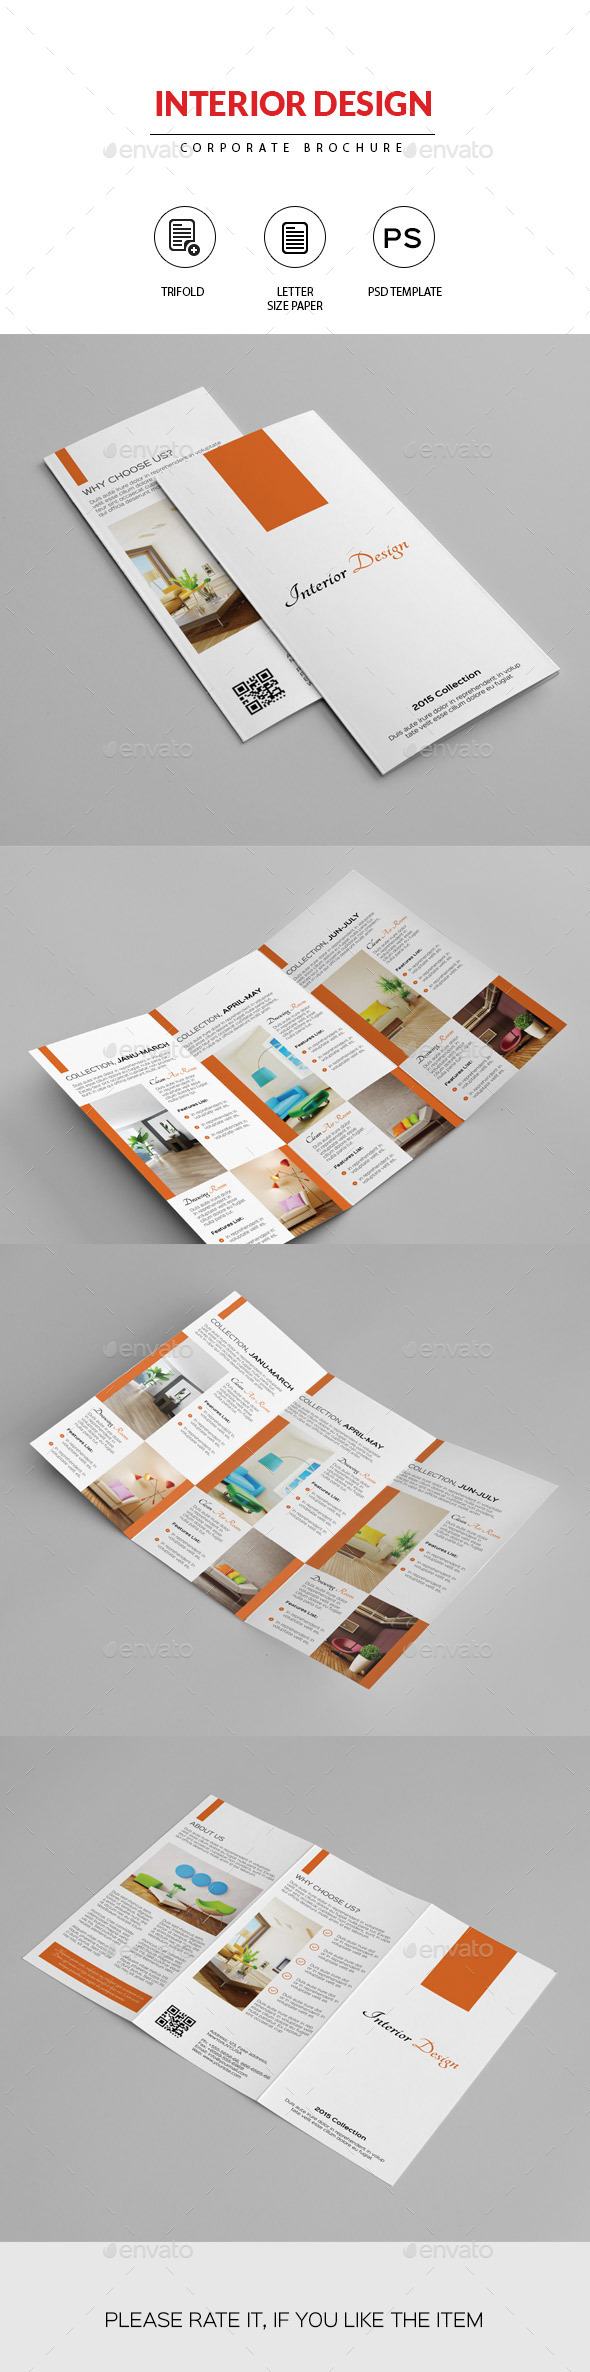 Minimal Trifold Brochure for Interior Design - Corporate Brochures